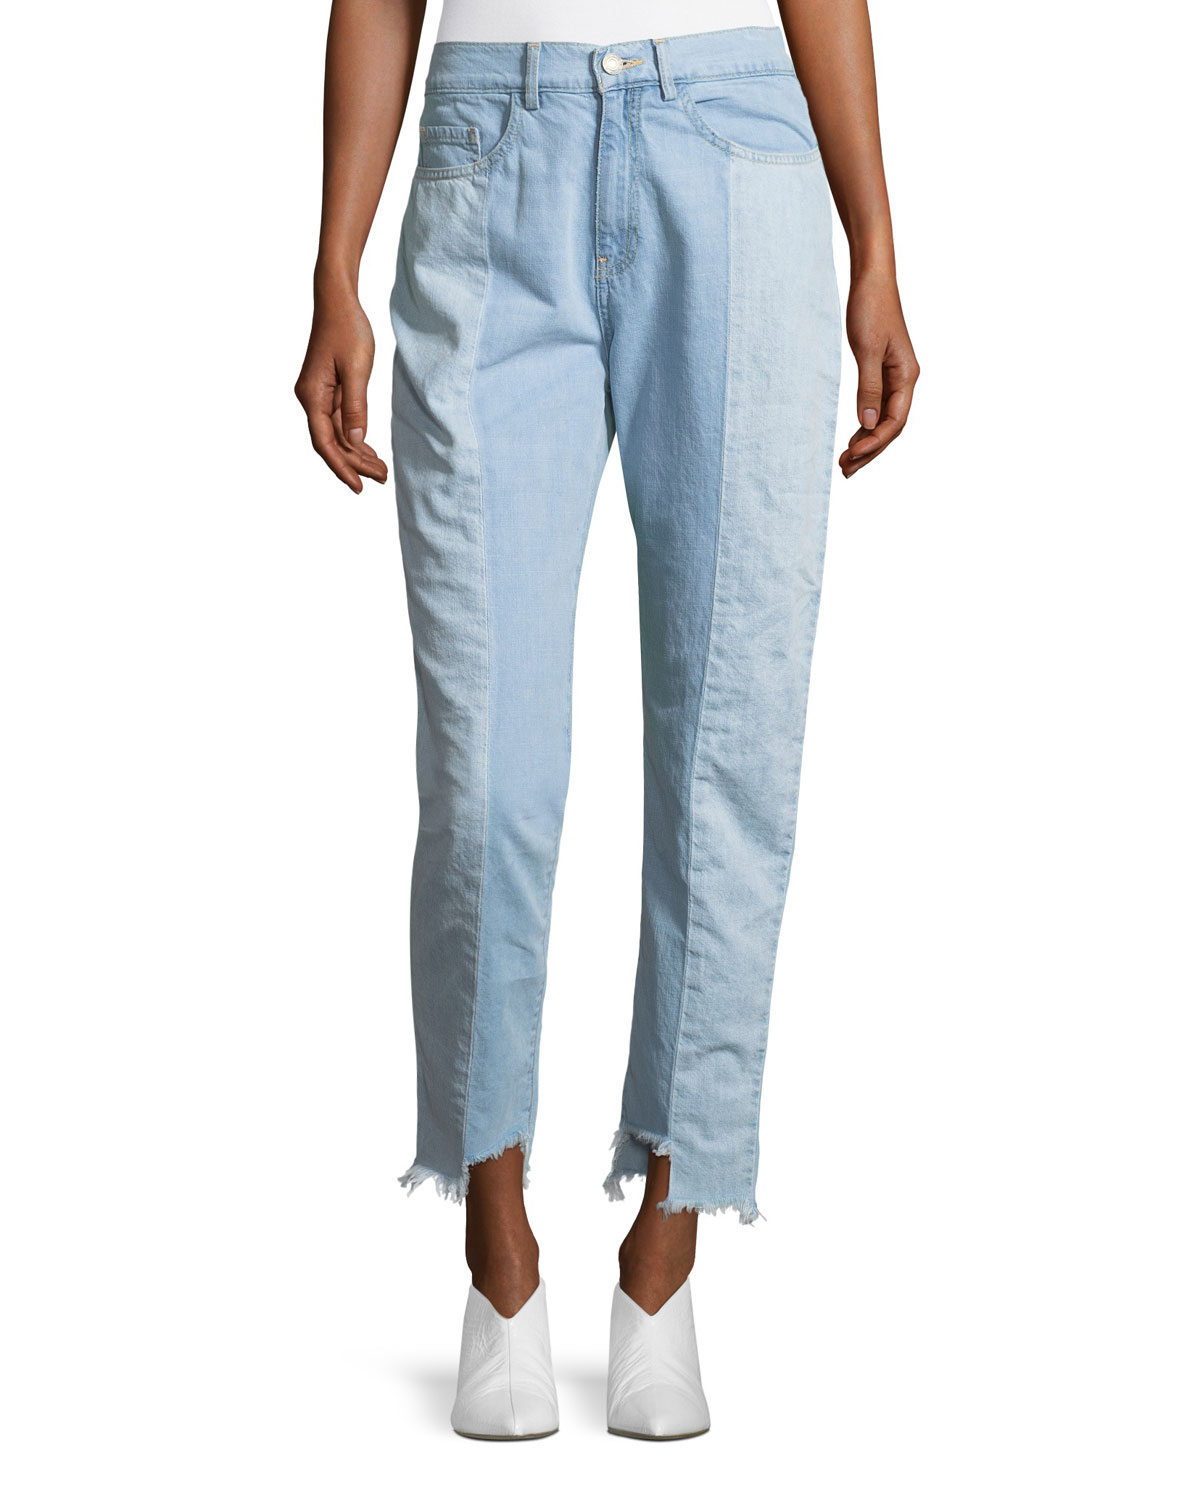 Reily Two-Tone Light-Wash Straight-Leg Jeans